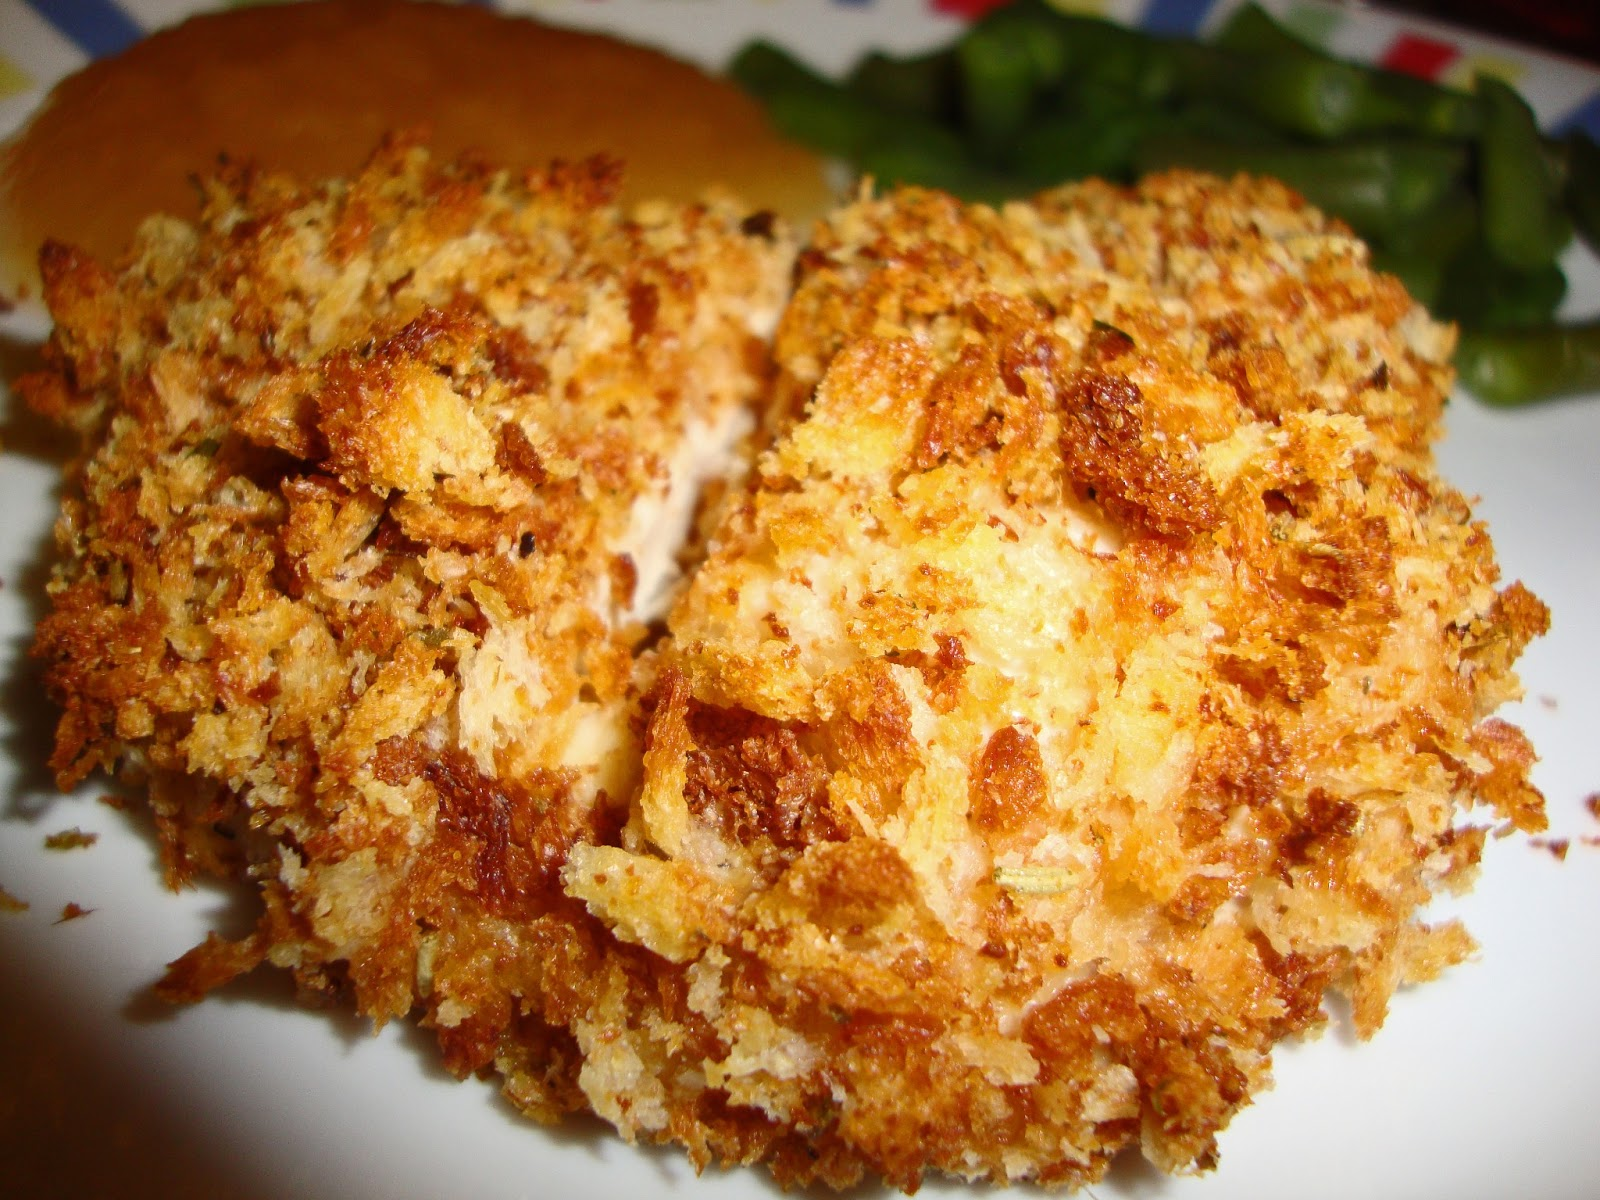 Dining with Dinosaurs: Baked Breaded Chicken